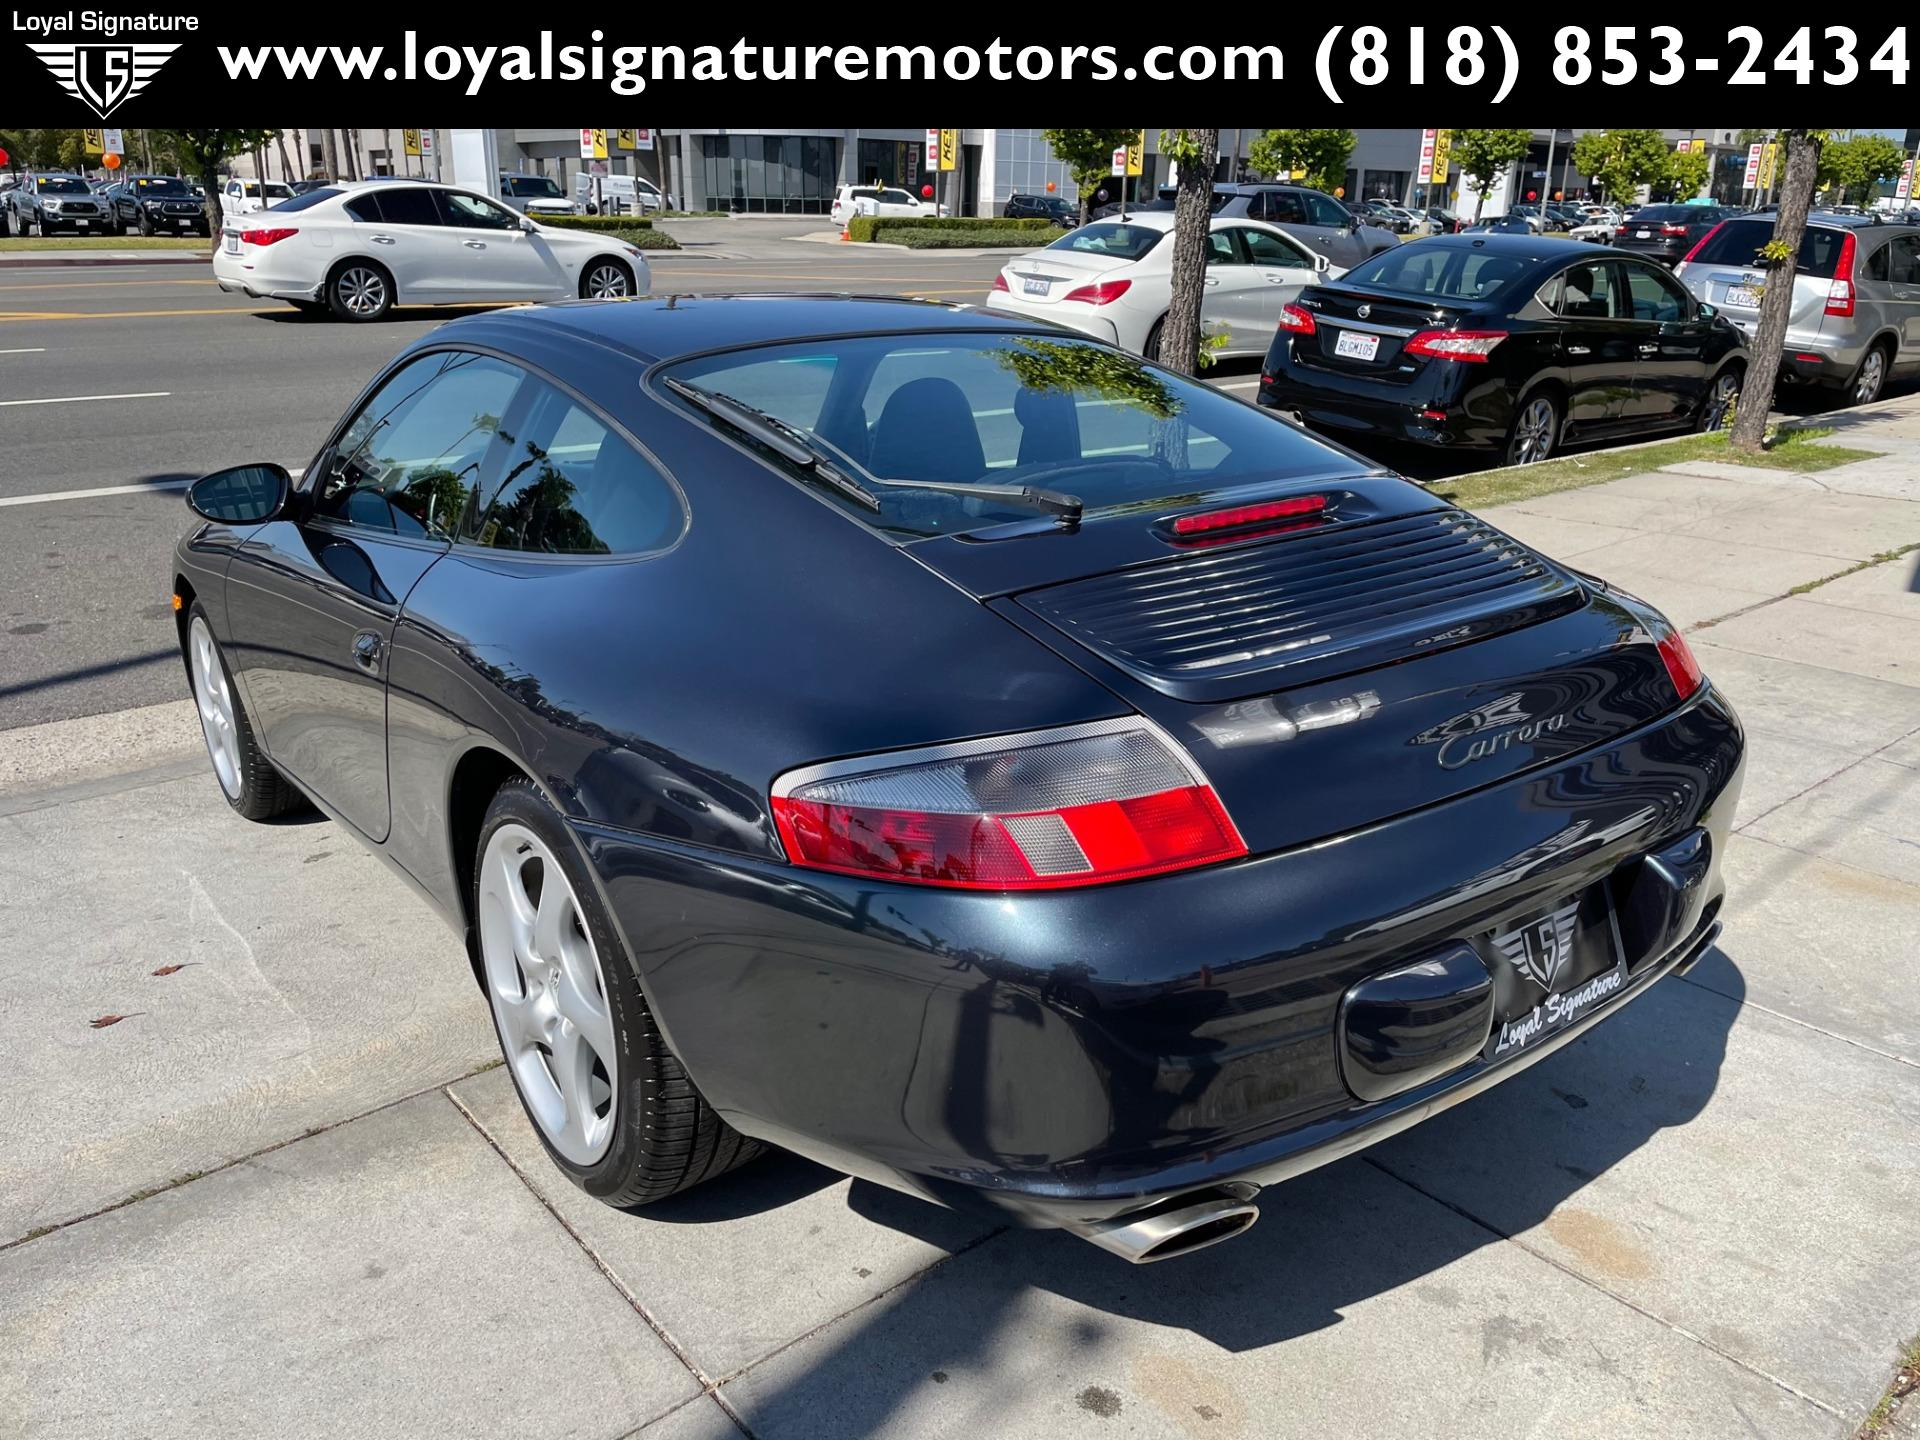 Used-2004-Porsche-911-Carrera